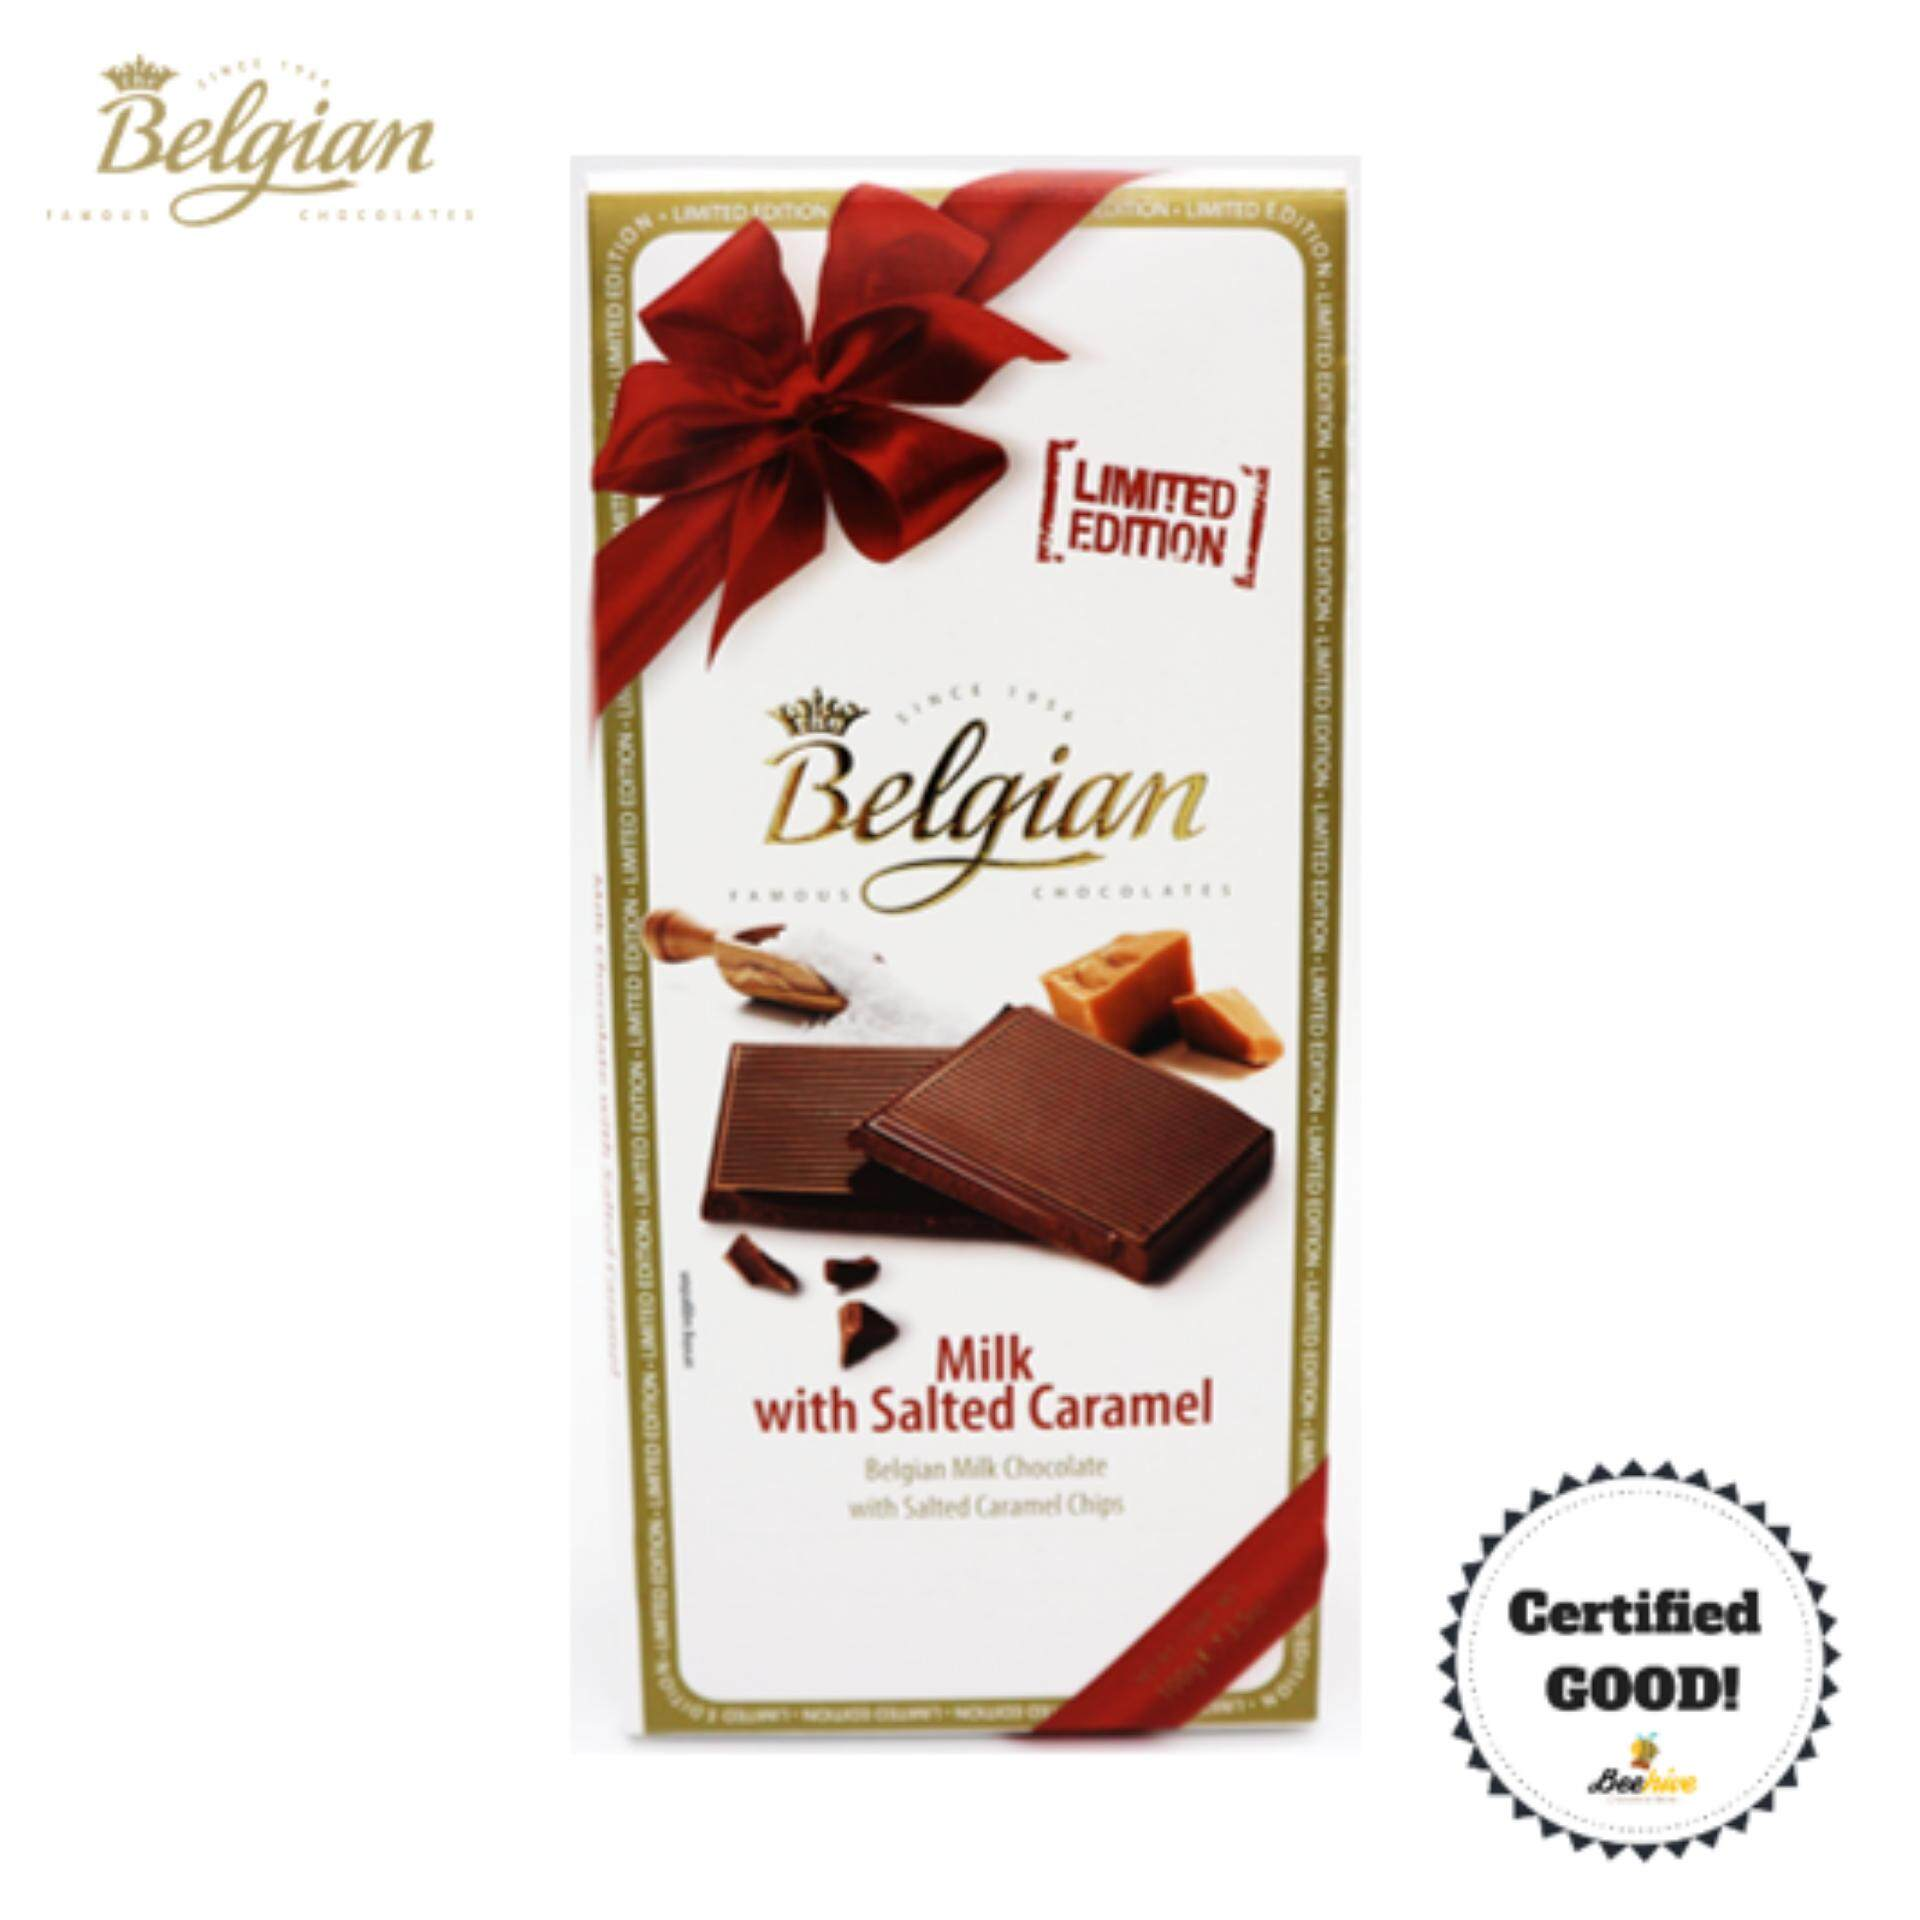 Belgian Limited Edition Milk with Salted Caramel 100g